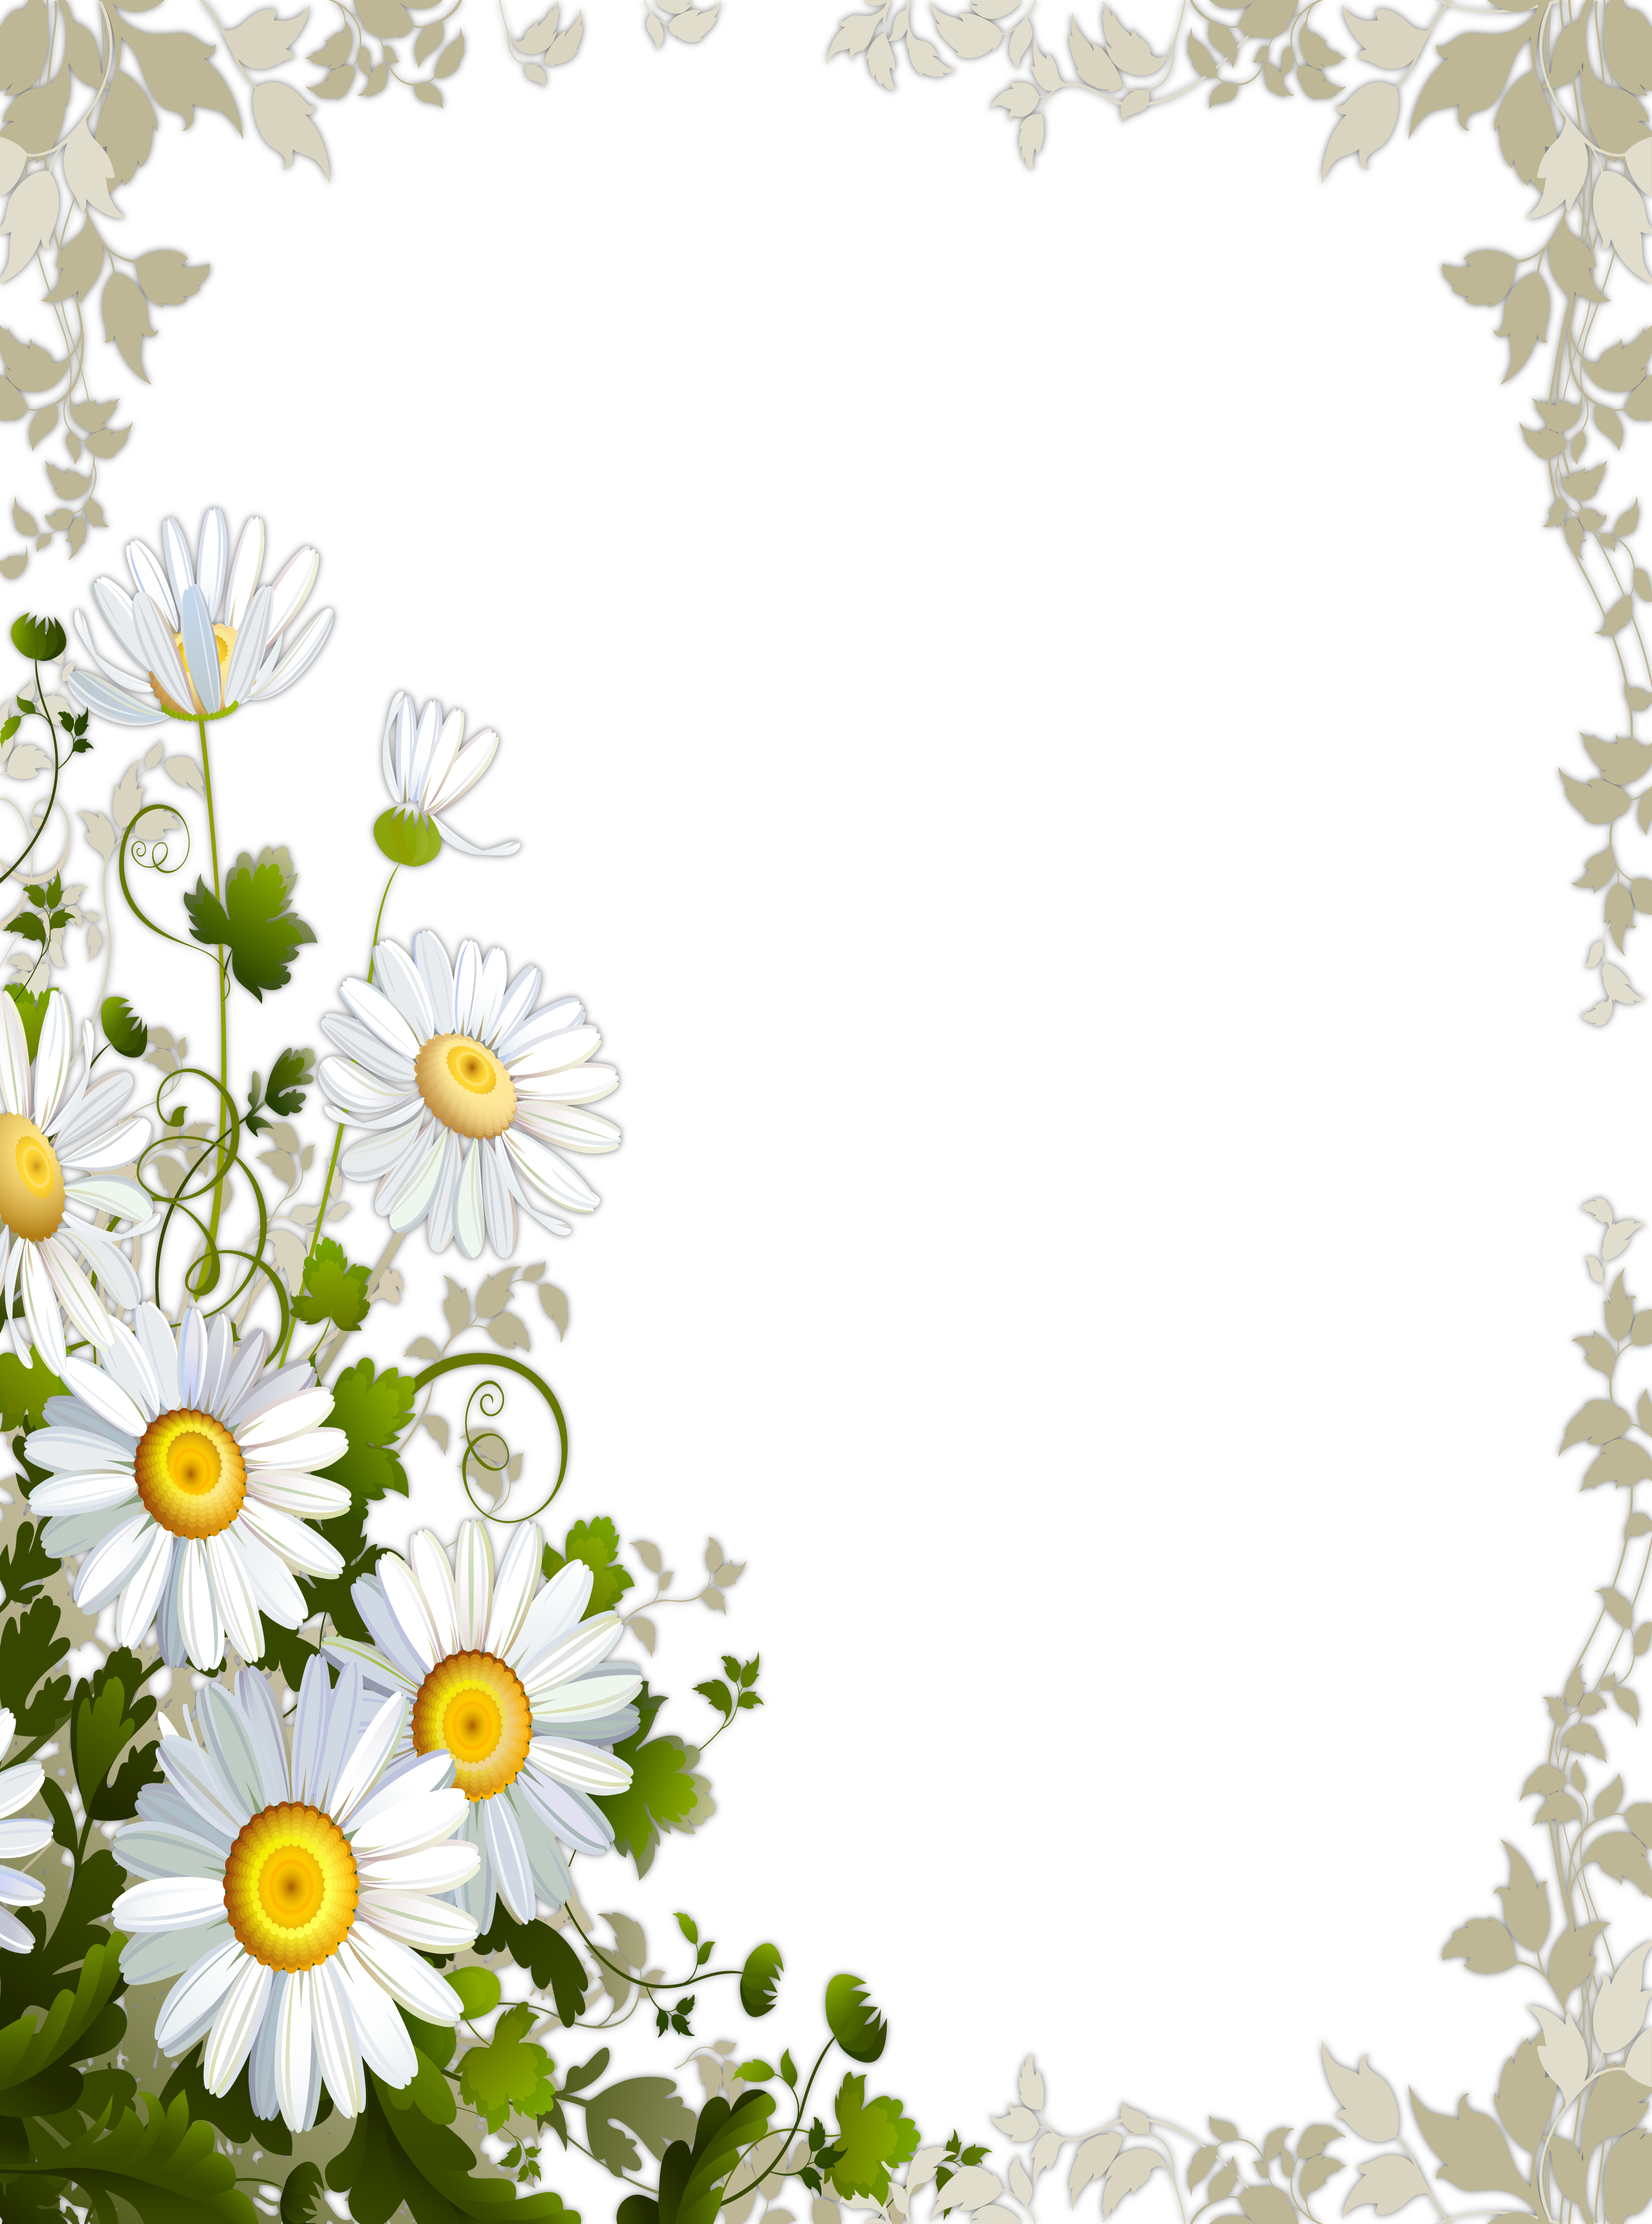 Transparent frame with daisies gallery yopriceville high transparent frame with daisies gallery yopriceville high quality images and transparent png free clipart izmirmasajfo